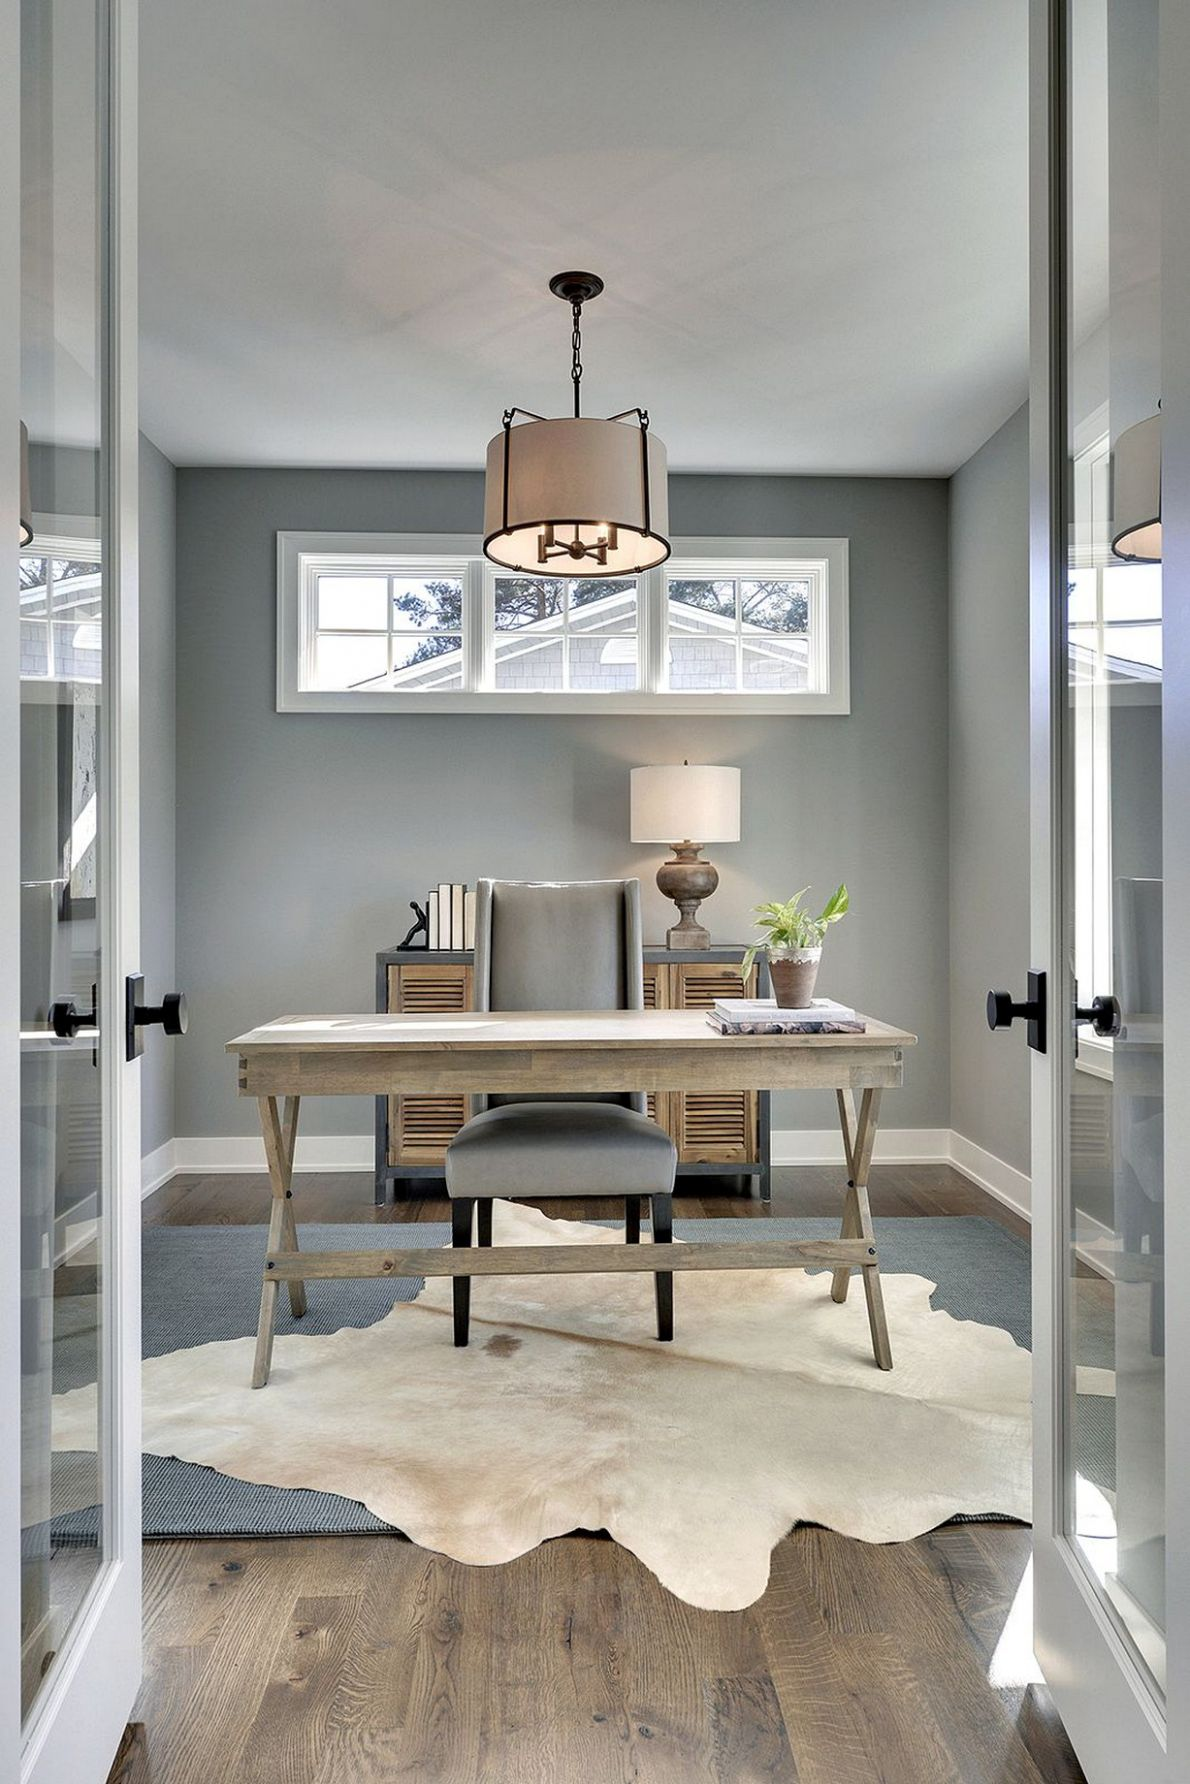 Modern And Chic Ideas For Your Home Office Source Pinterest.com ..